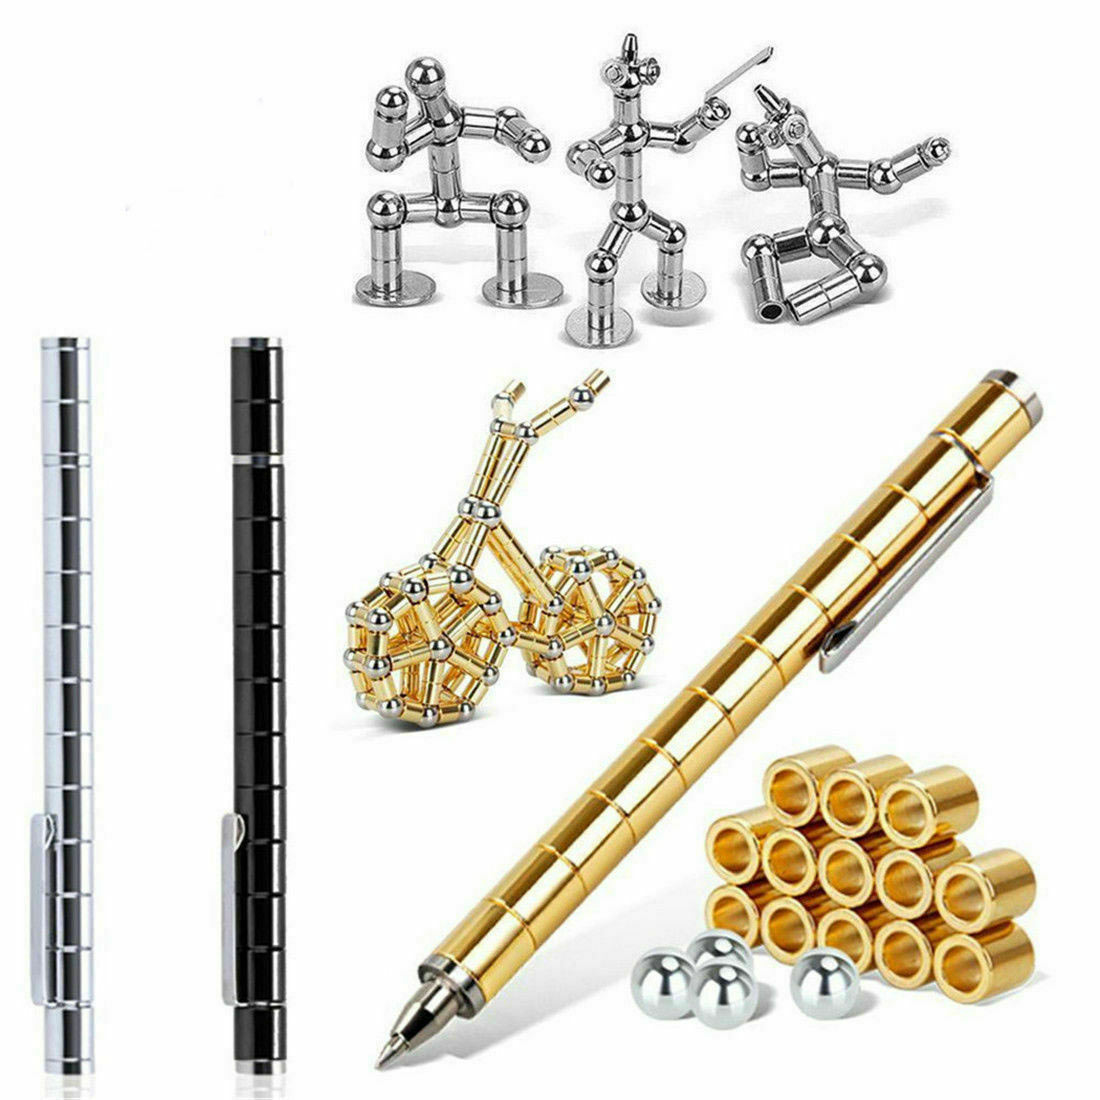 Modular Polar Pen Magnetic Magnets Ball Touch Pen With 12 Steel Balls In Box Adult TOY Gift